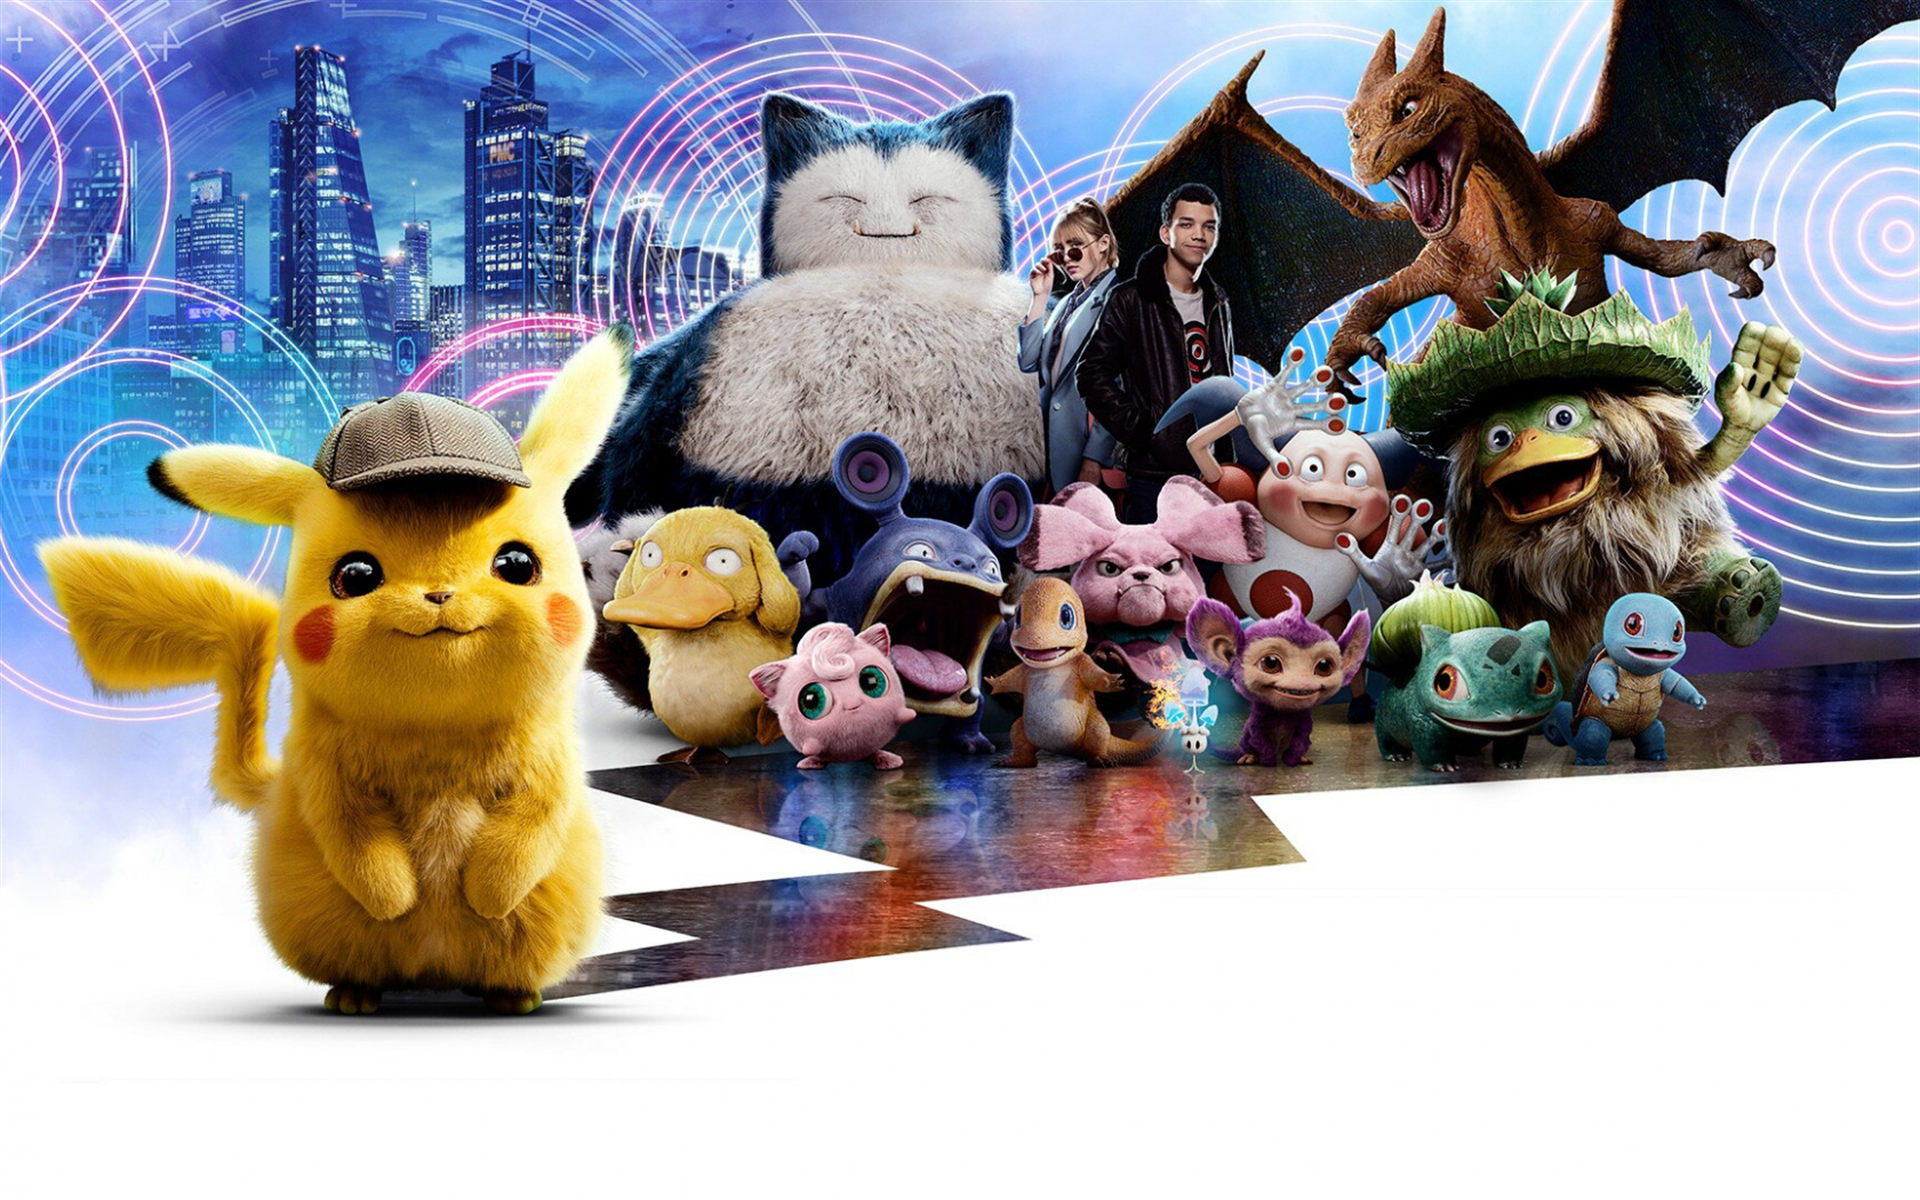 Pokemon, Detective Pikachu, 2019, poster, promotional materials, all characters, creative art